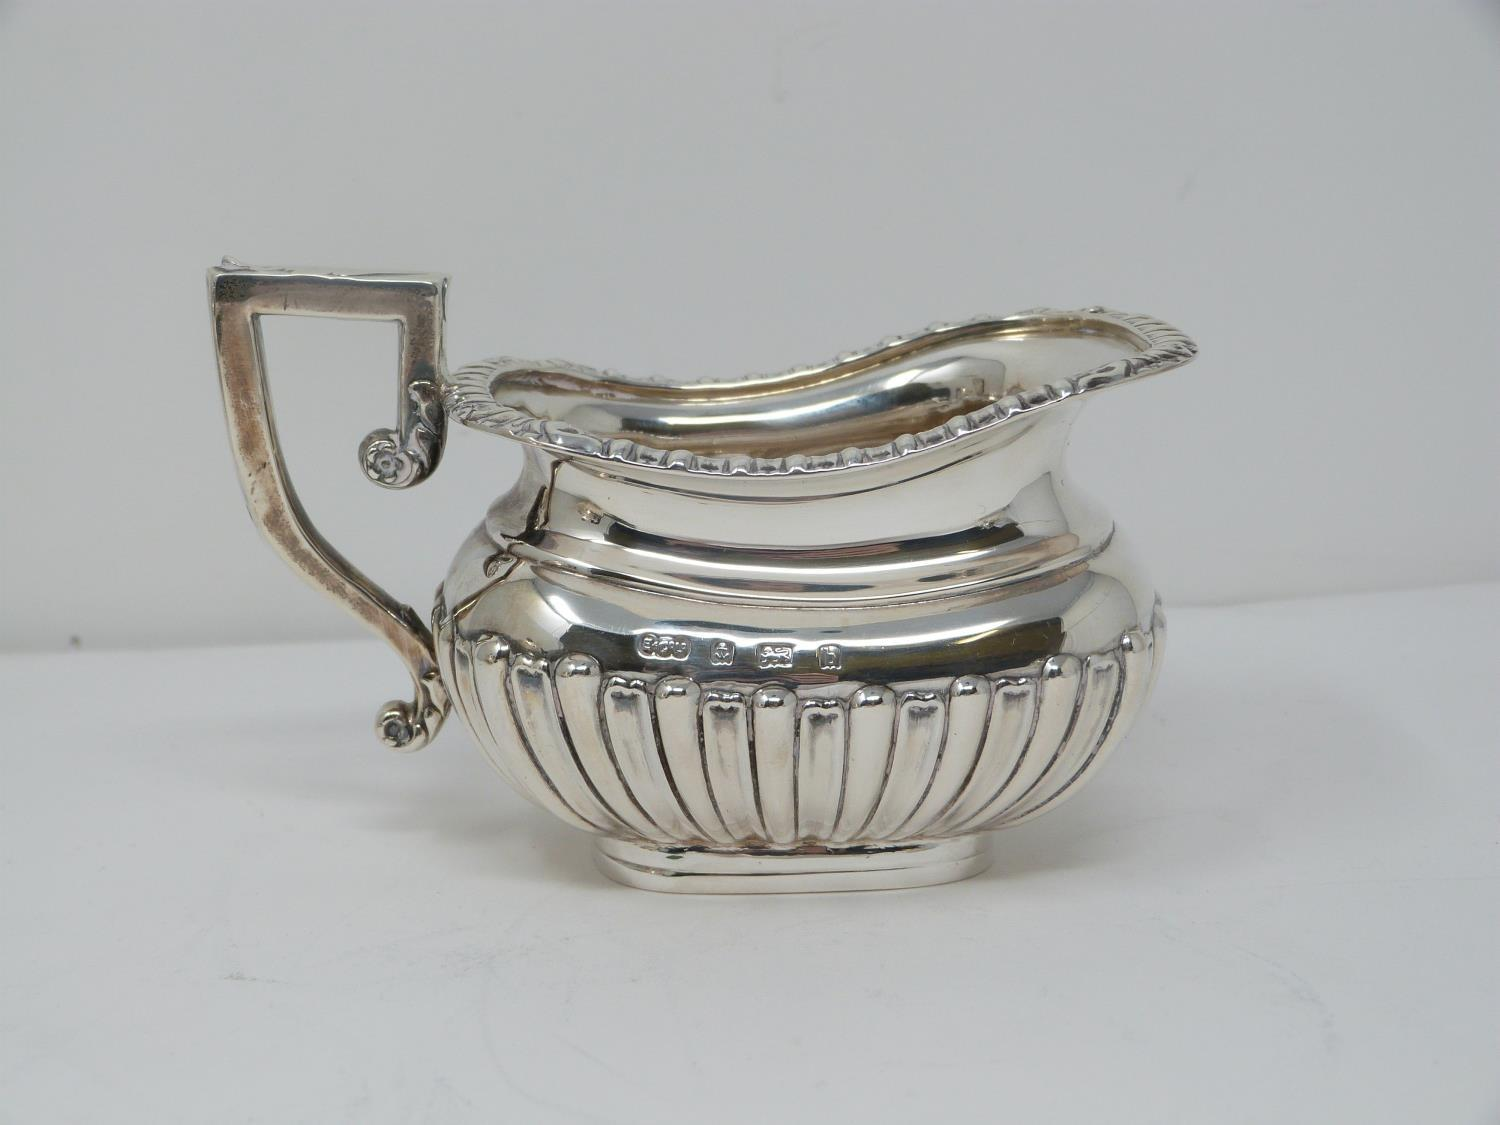 An Elkington and Co. silver three piece tea service, includes a teapot, sugar bowl and milk jug. - Image 8 of 12